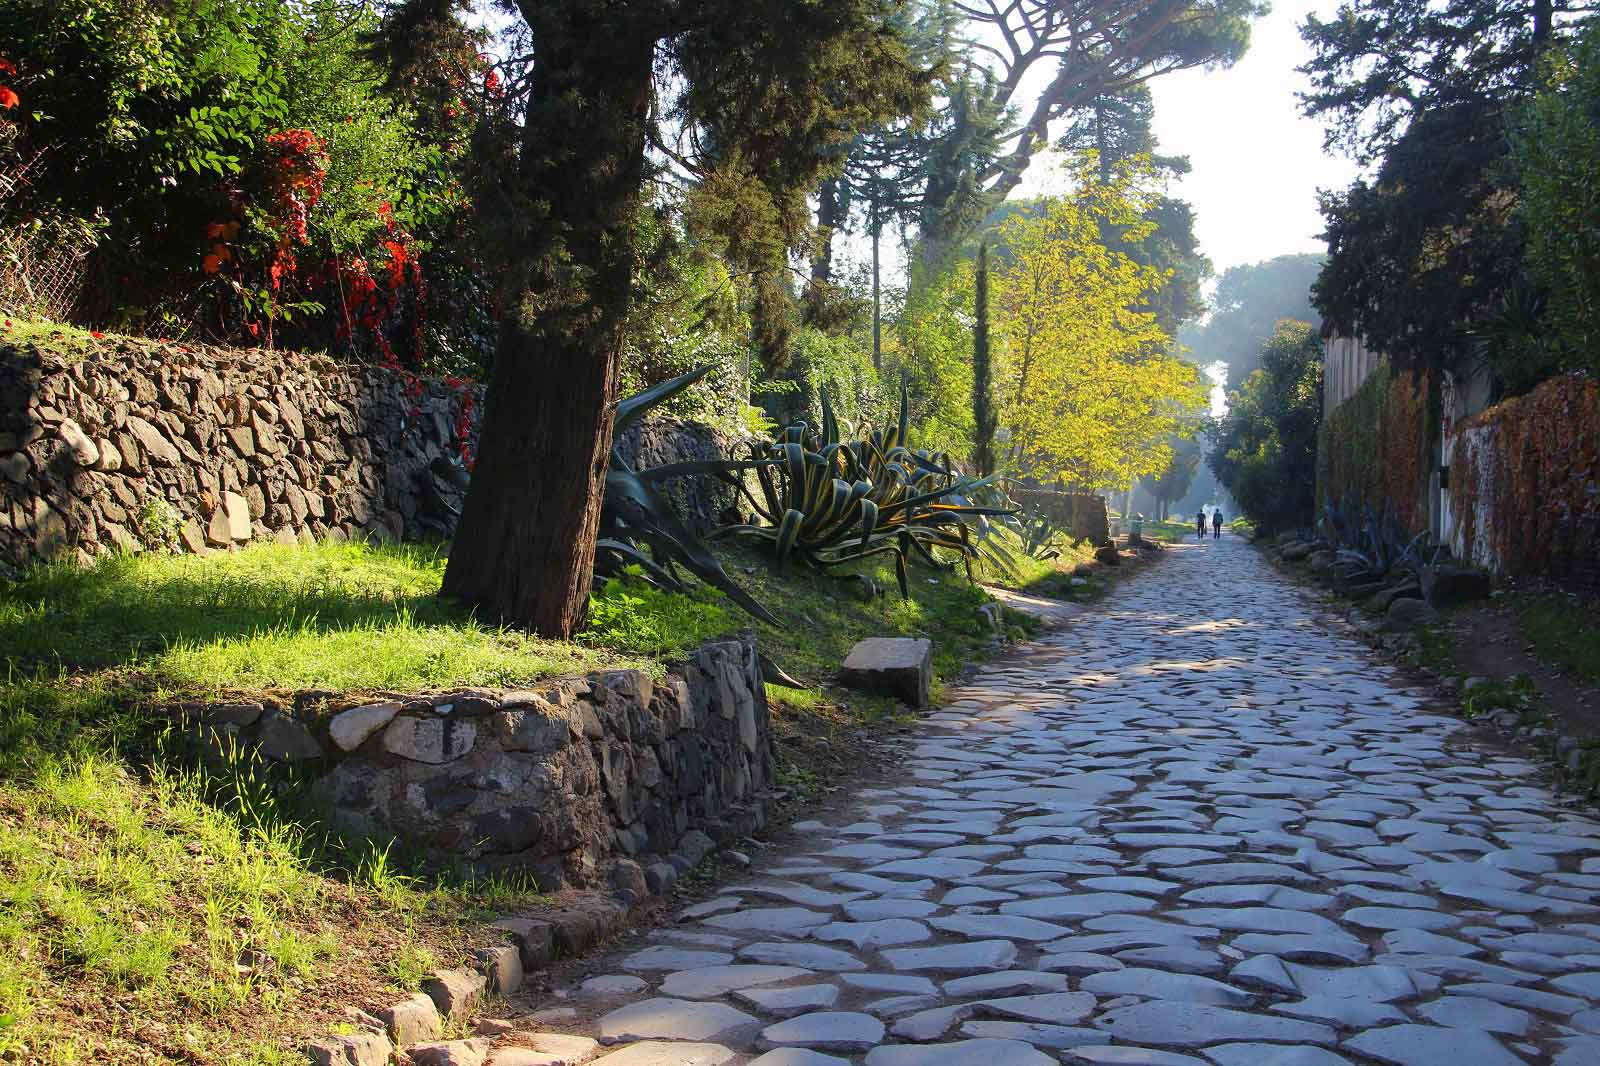 Undiscovered Rome - Tour of Appian Way and the Roman Countryside